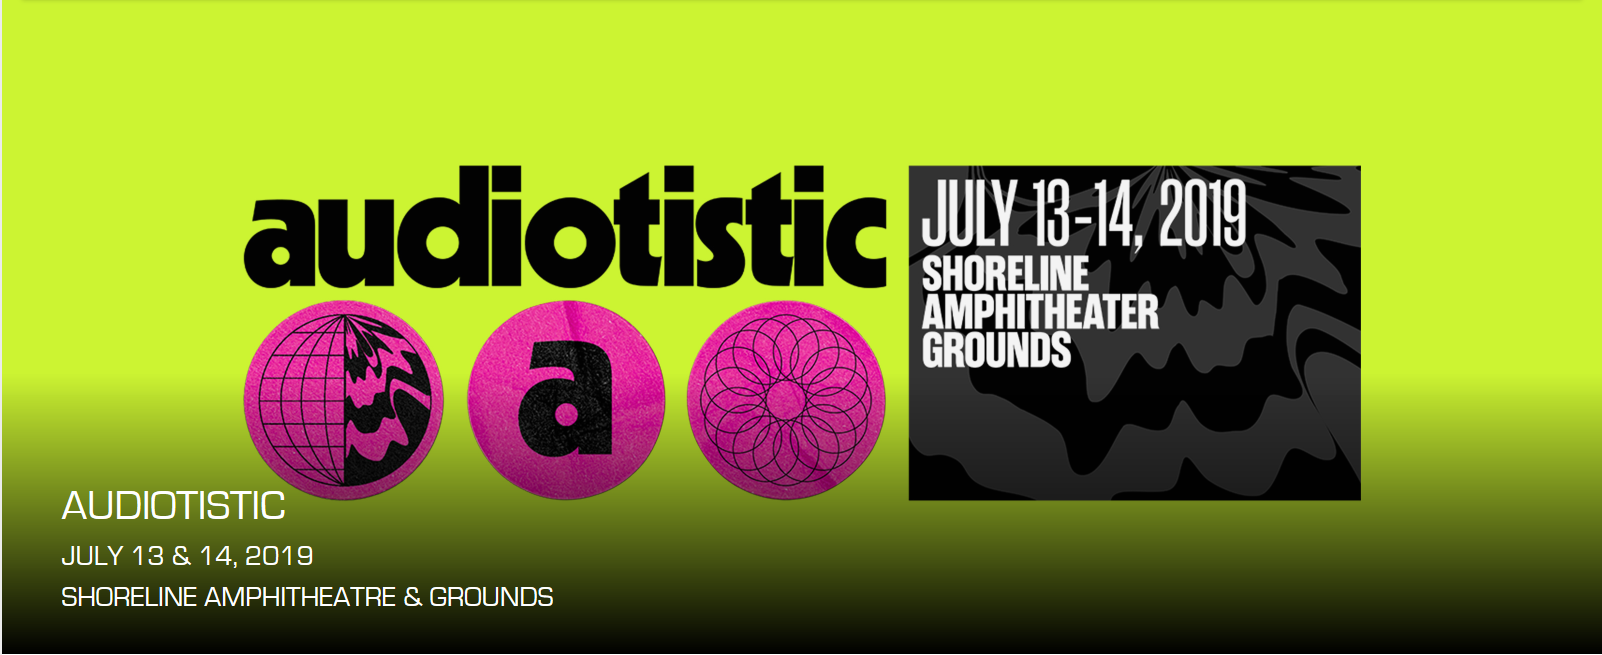 Audiotistic Bay Area: Tiesto, Illenium, Zeds Dead & Claude VonStroke - 2 Day Pass at Shoreline Amphitheatre